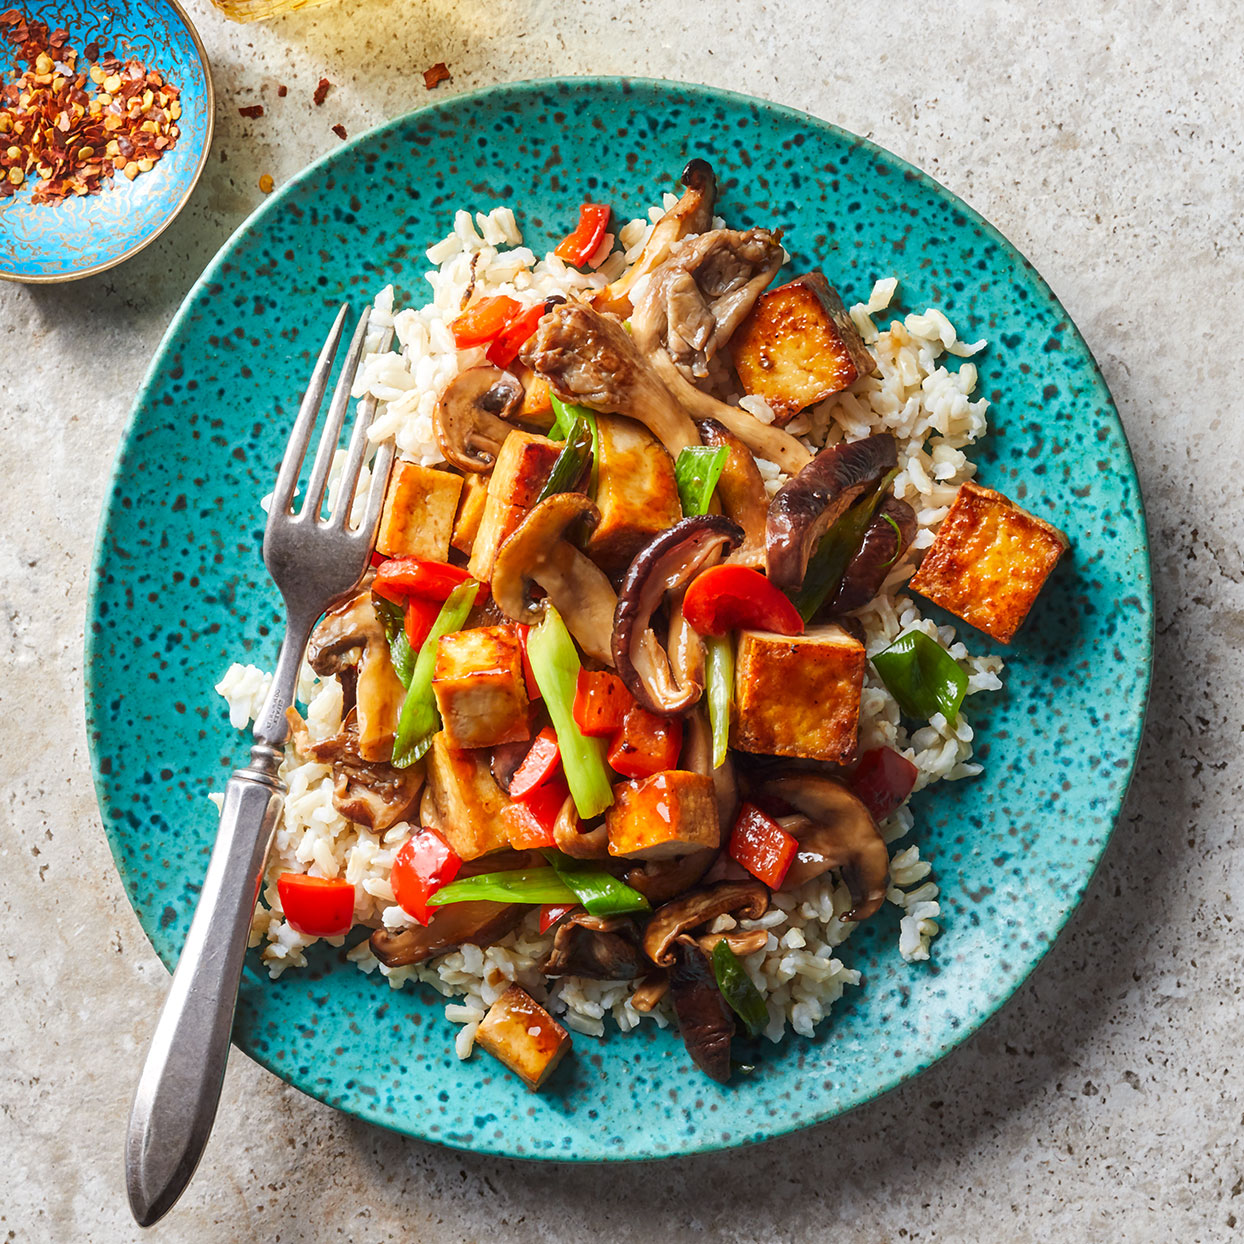 This tofu veggie stir-fry is quick and easy, making it a great go-to weeknight meal. Baked tofu has a firm, toothsome texture that crisps well in a hot pan. You can find it in flavors like teriyaki and sesame, both of which are delicious here. Or opt for a smoked version, which has the same texture with a more robust flavor. Serve over brown rice.Source: EatingWell Magazine, December 2019